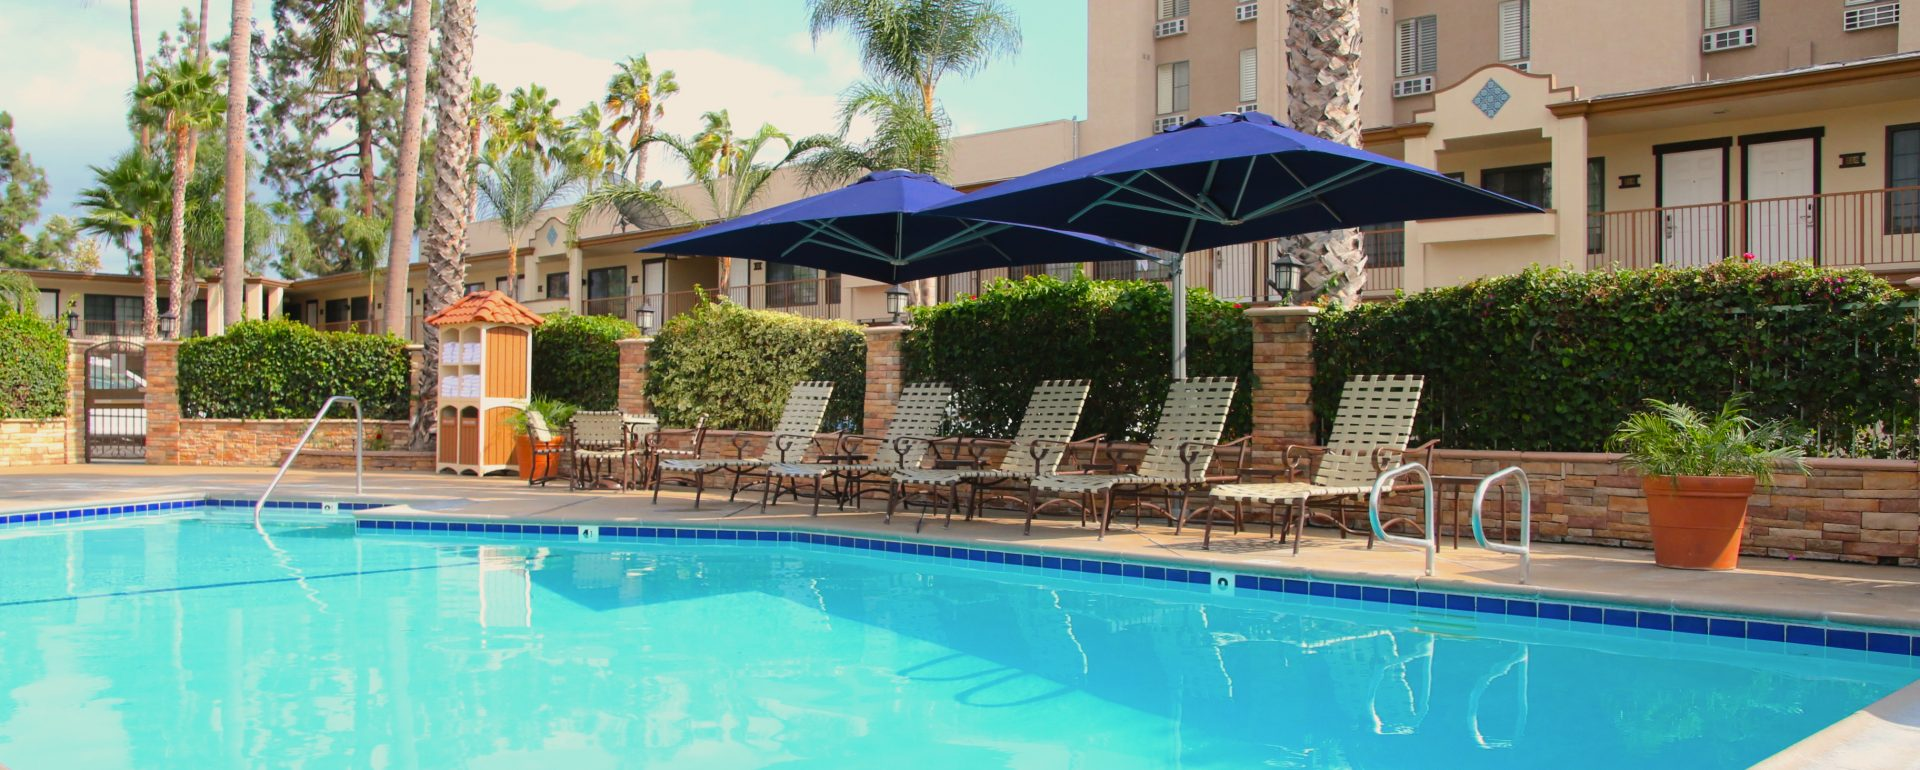 outdoor pool area at Park Vue Inn in Anaheim, CA